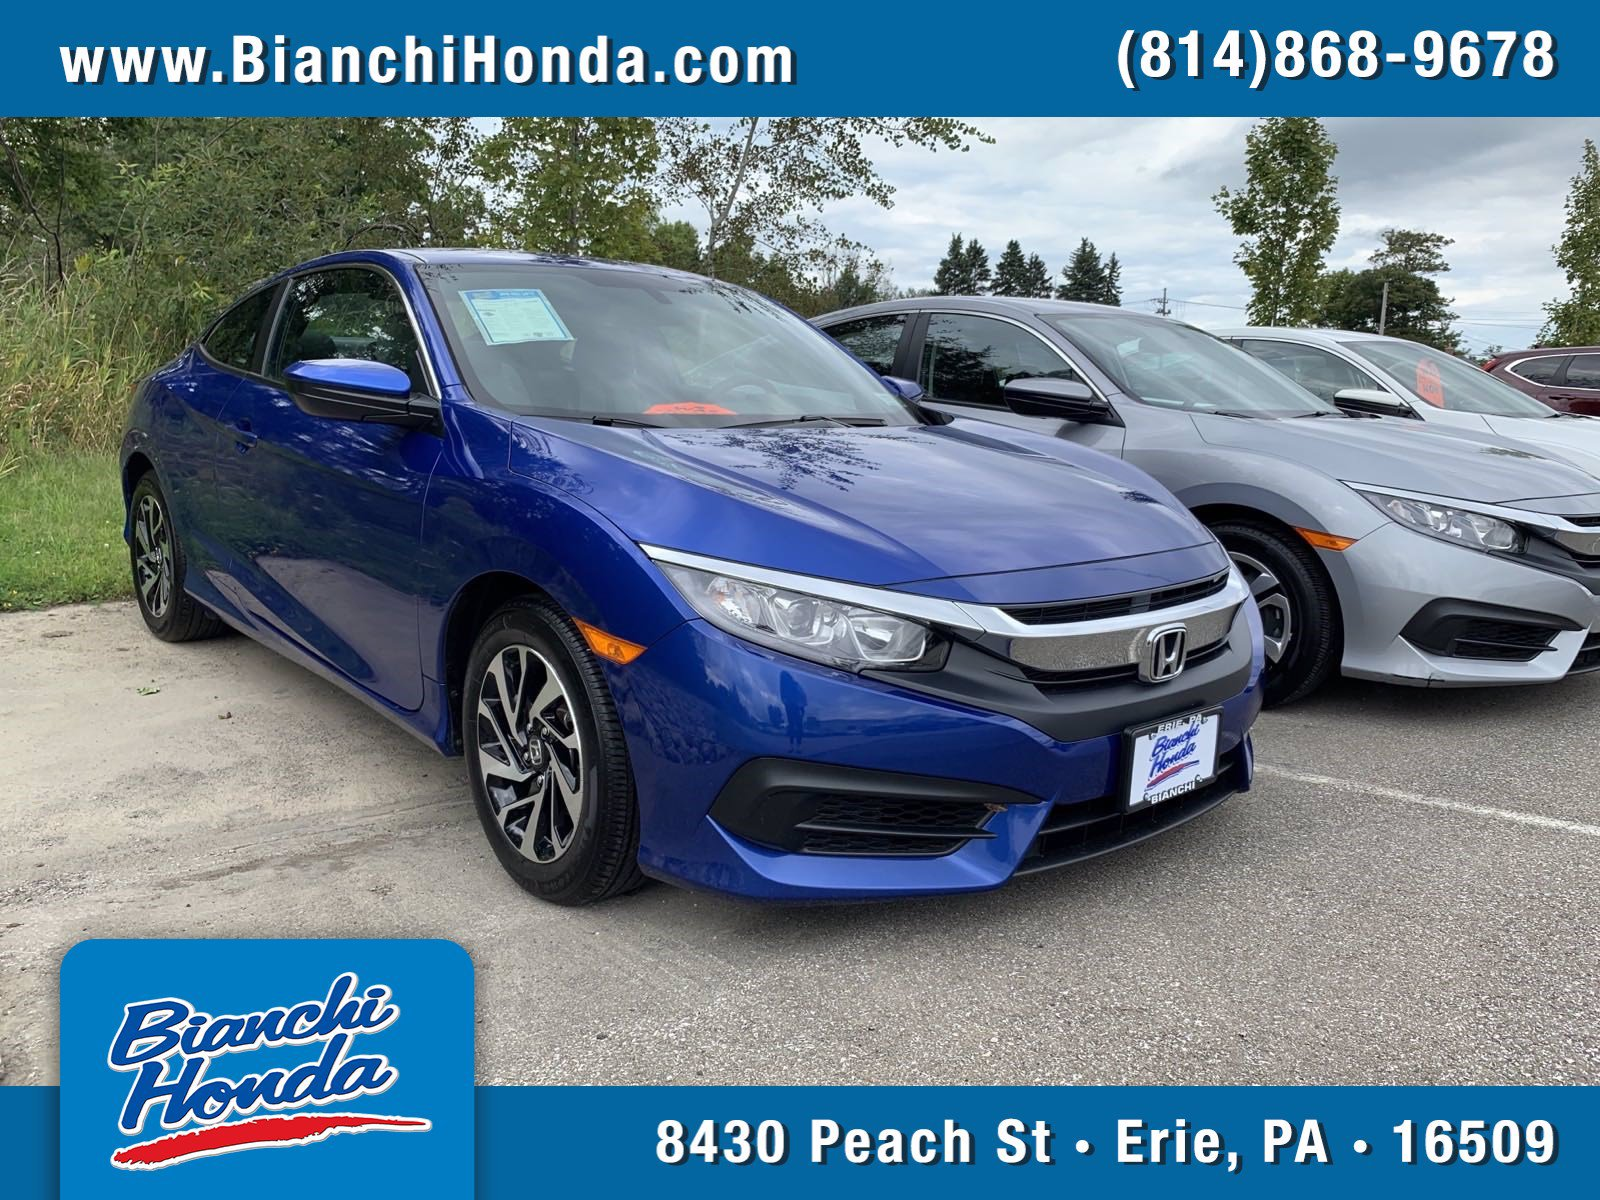 Certified Pre-Owned 2018 Honda Civic Coupe LX-P